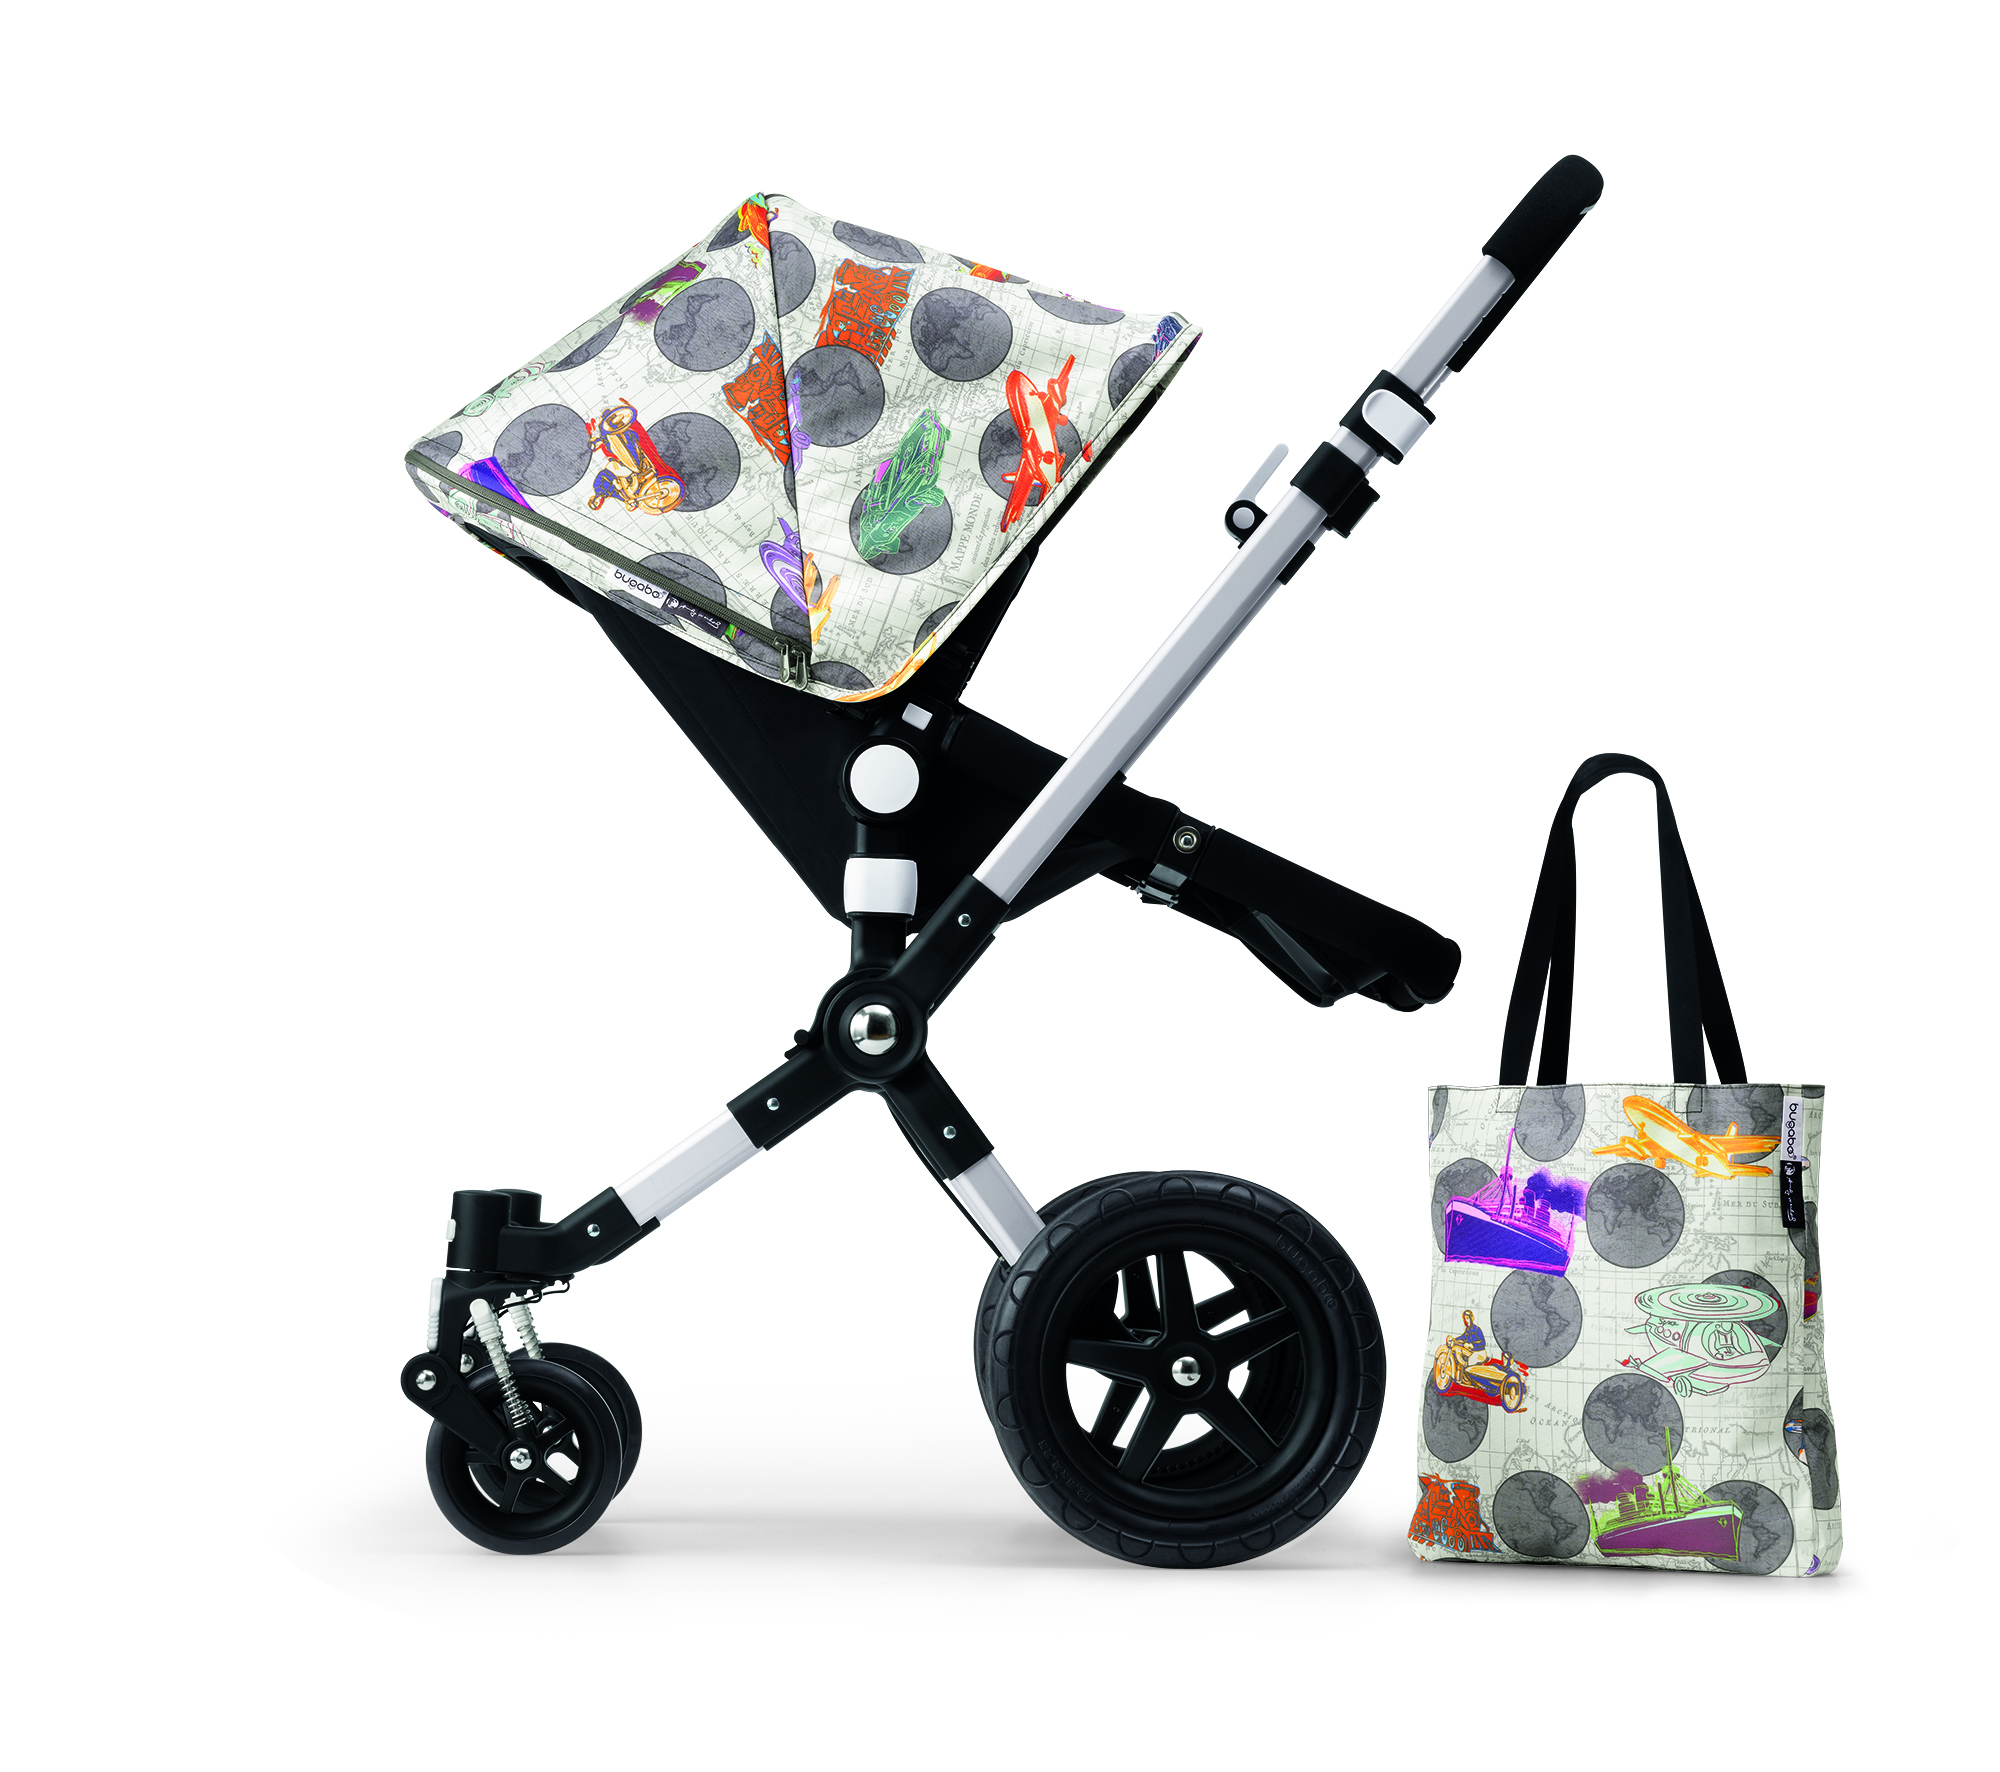 The Andy Warhol + Bugaboo Globetrotter Collection, designed by Flavor Paper.